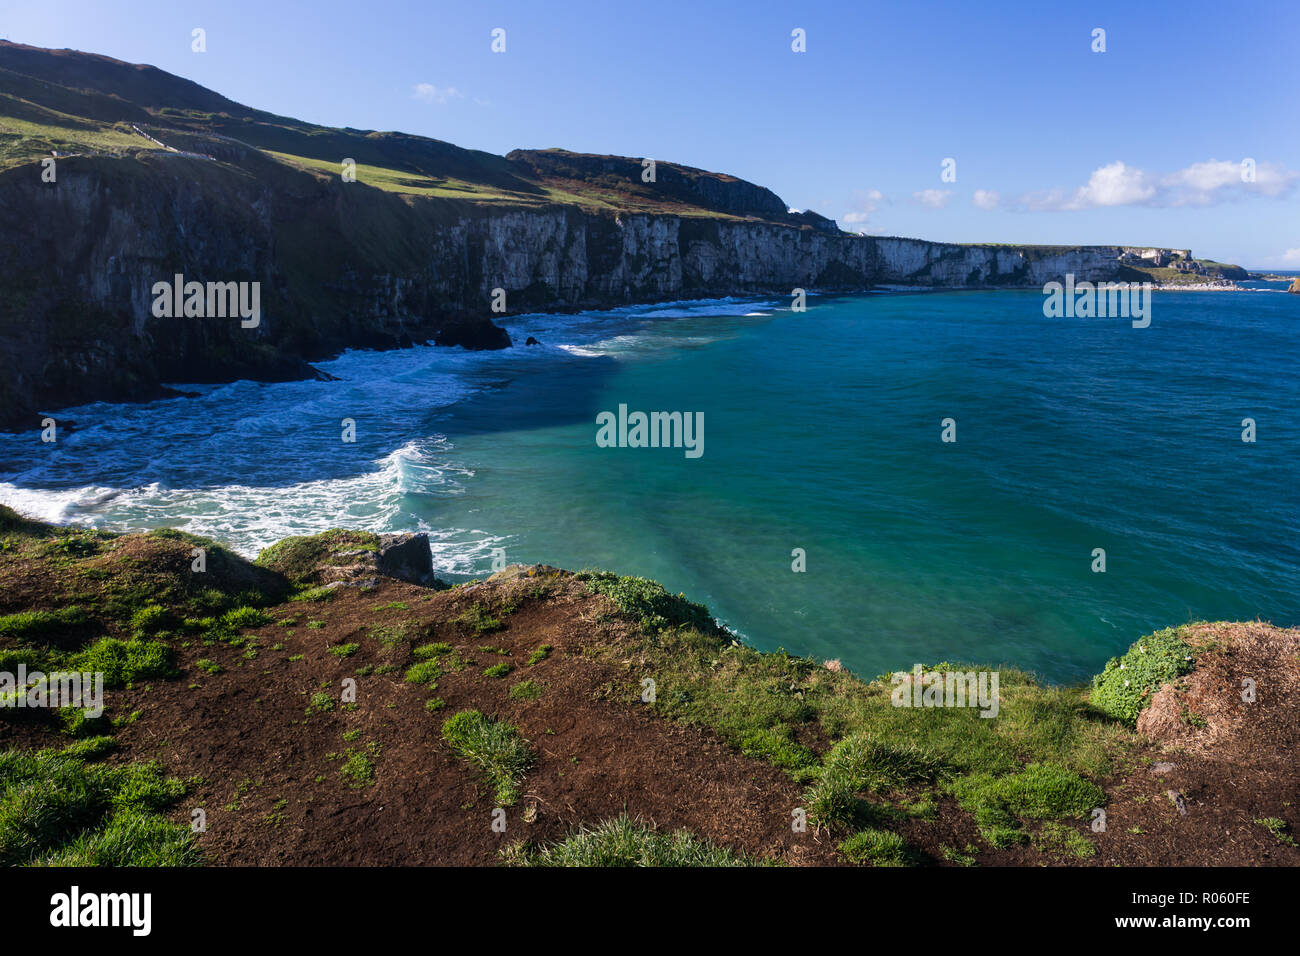 View of North Antrim coastline looking West from Carrick-a-Rede island. County Antrim, N.Ireland. - Stock Image